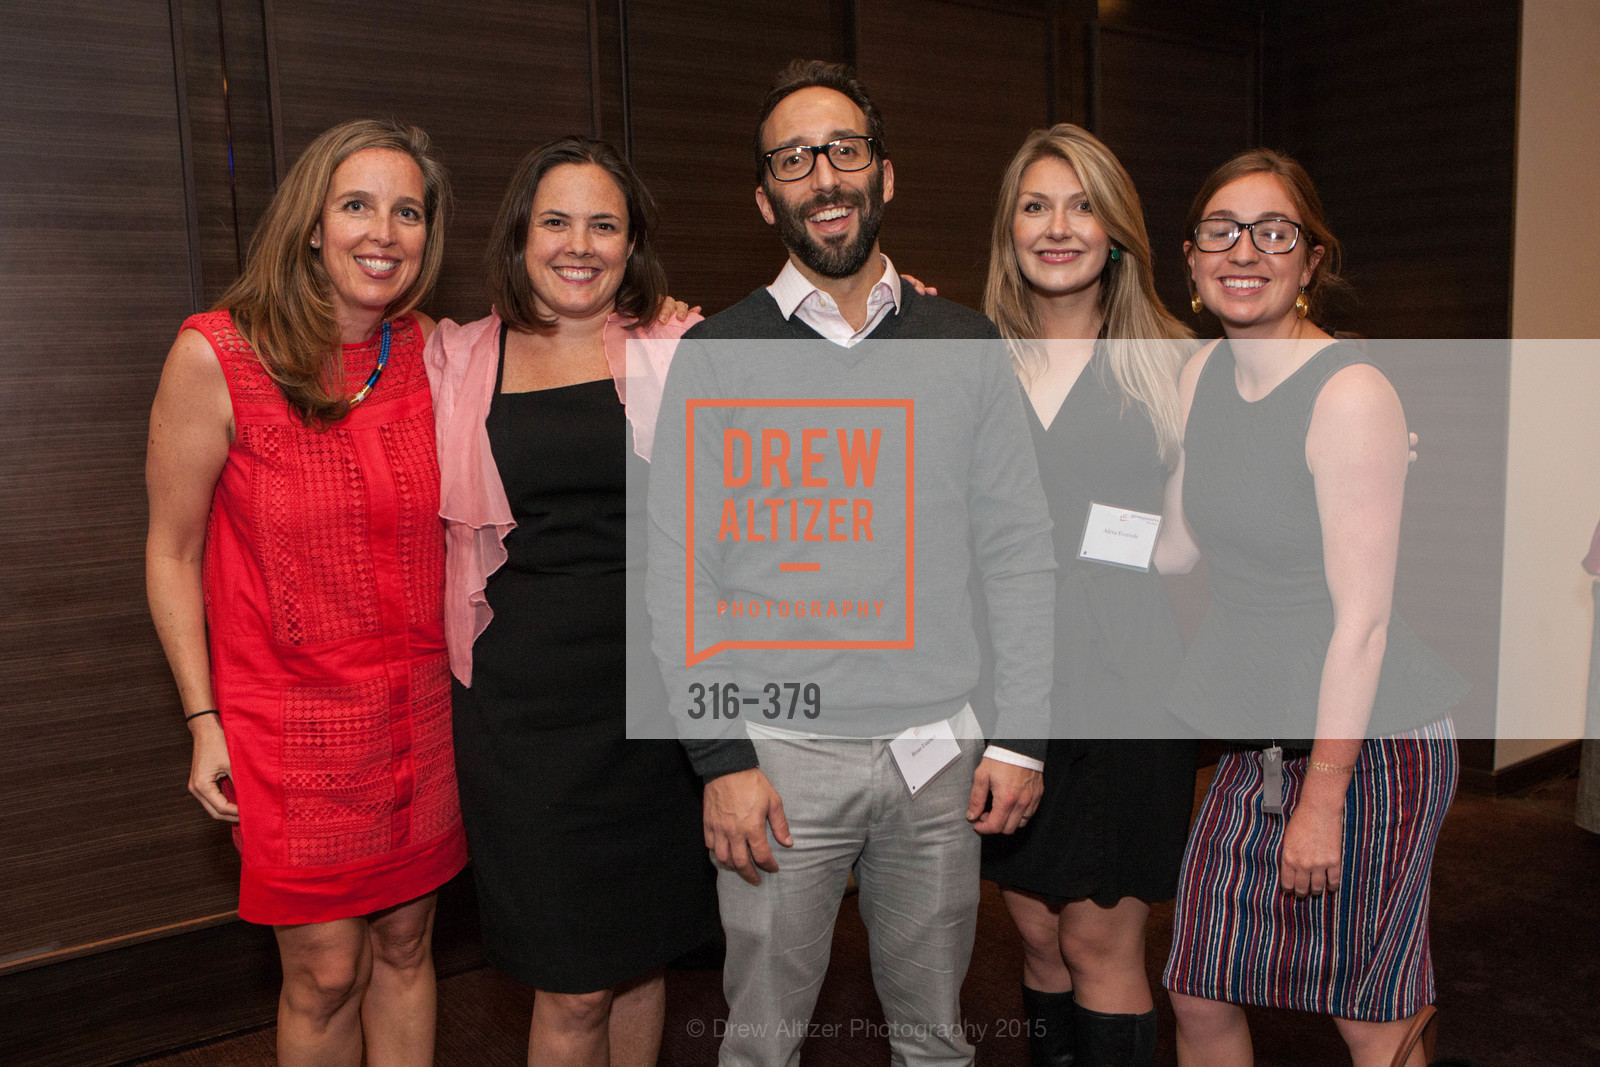 Alyene Schneidewind, Mary Kay Huse, Brian Estevez, Alesa Eversole, Elaine Stanfield, Genesys Works Bay Area Presents BREAKING THROUGH, St. Regis Hotel. 125 3rd St, October 14th, 2015,Drew Altizer, Drew Altizer Photography, full-service agency, private events, San Francisco photographer, photographer california